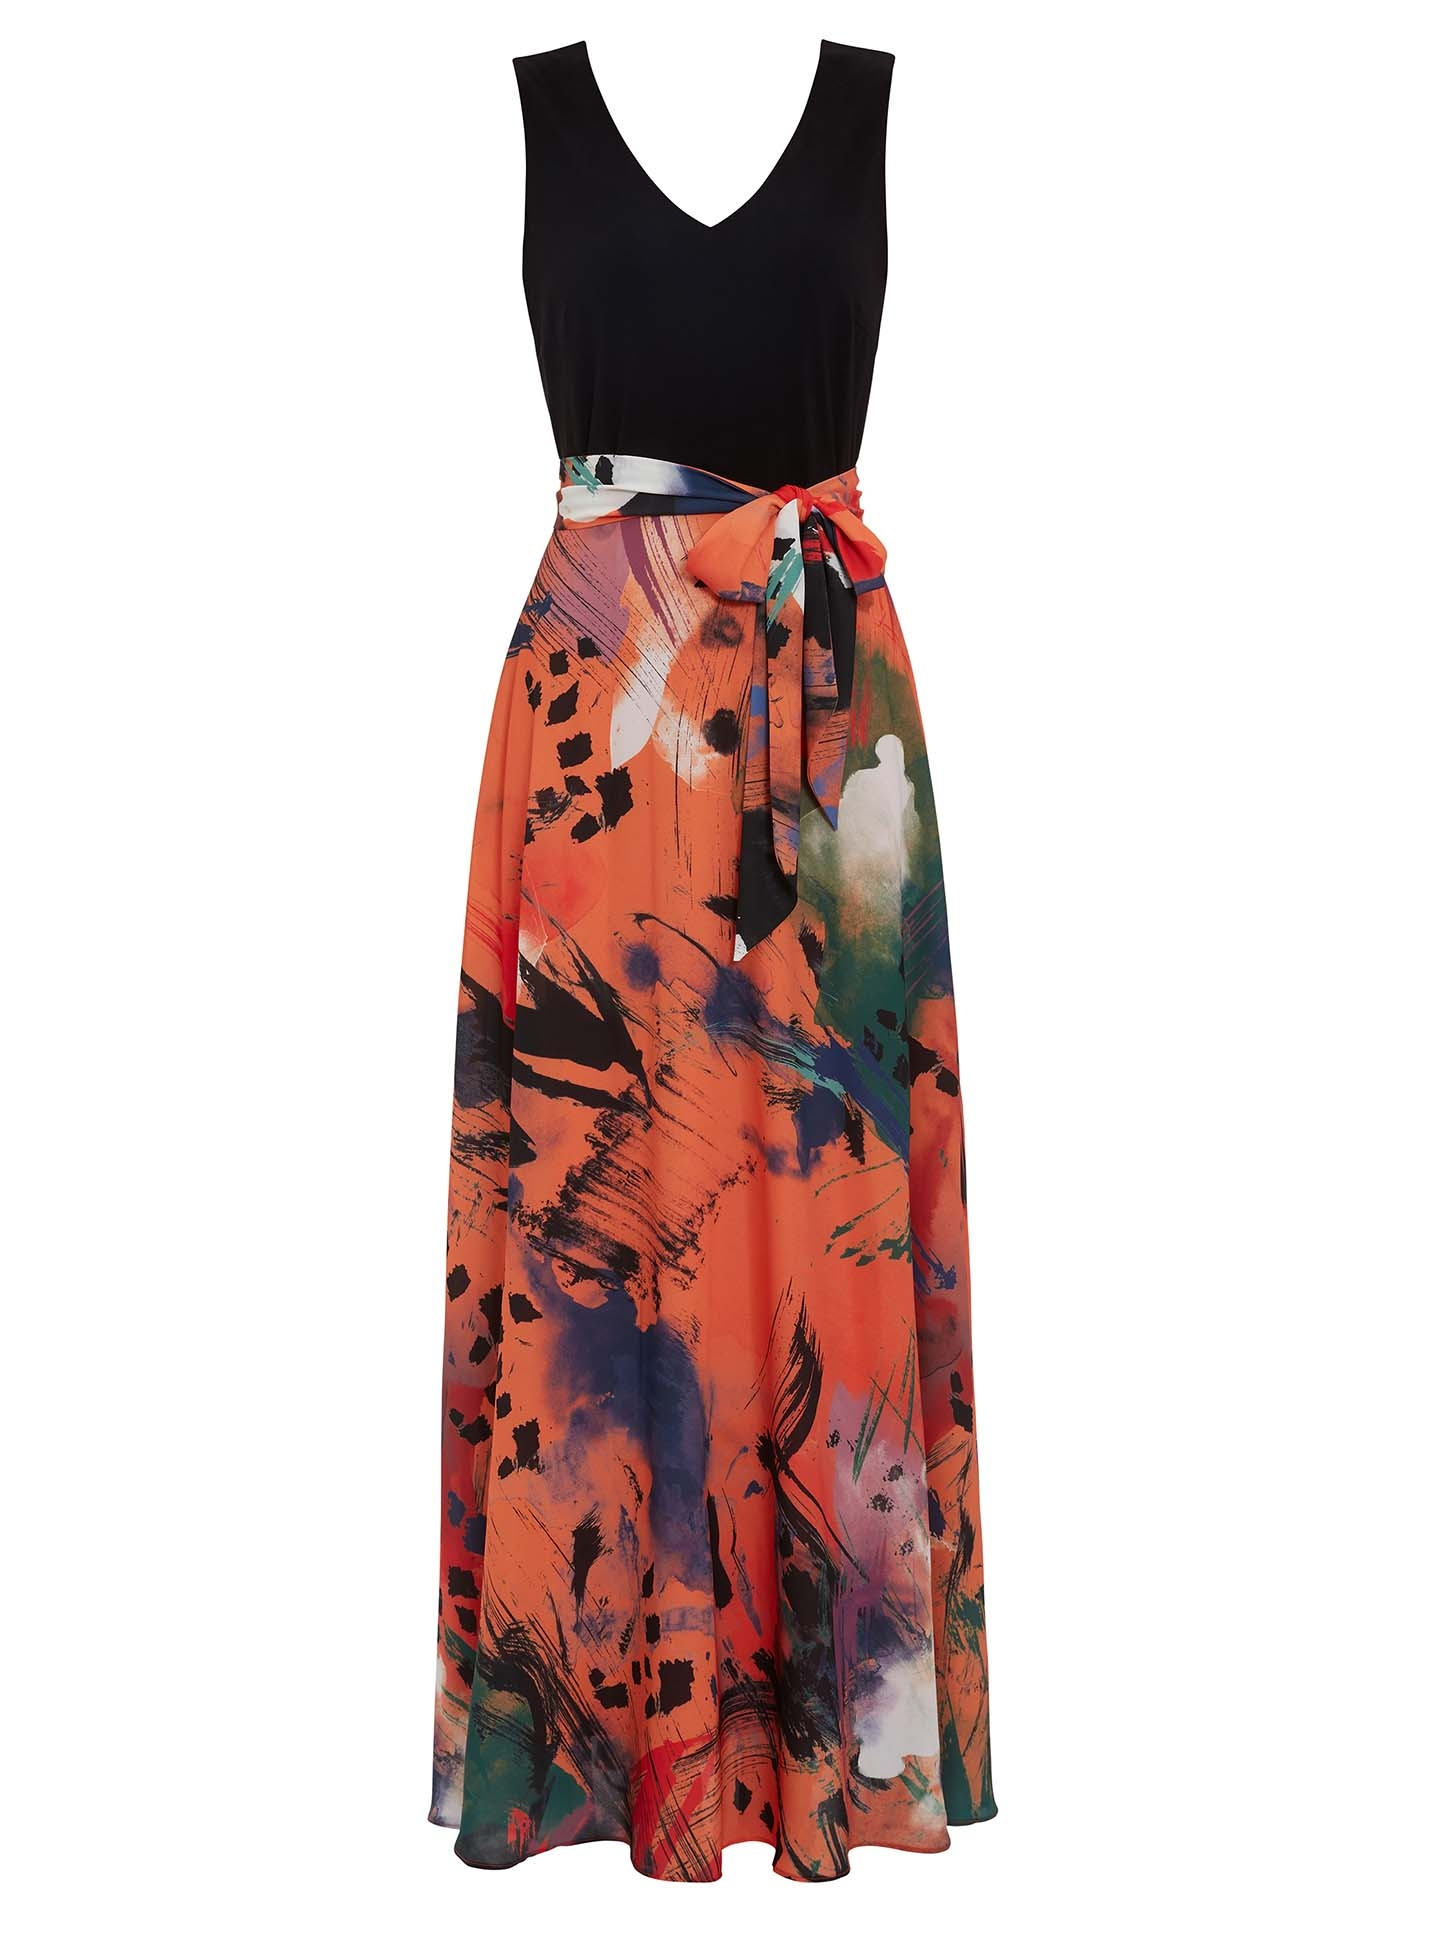 Ravenna Printed Skirt Dress